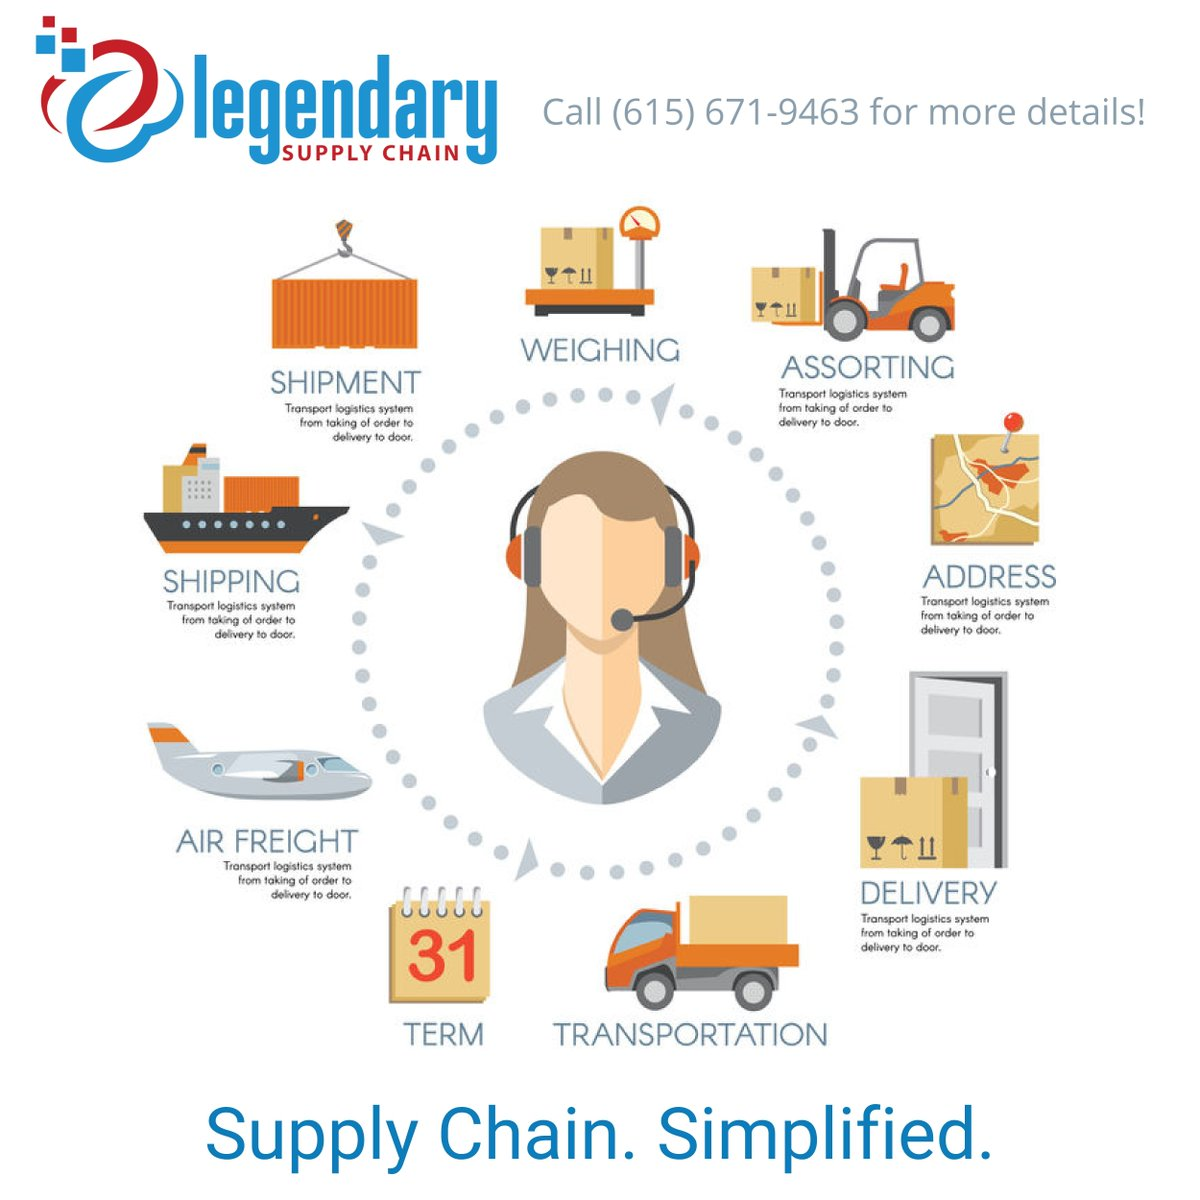 supplychainsimplified hashtag on Twitter